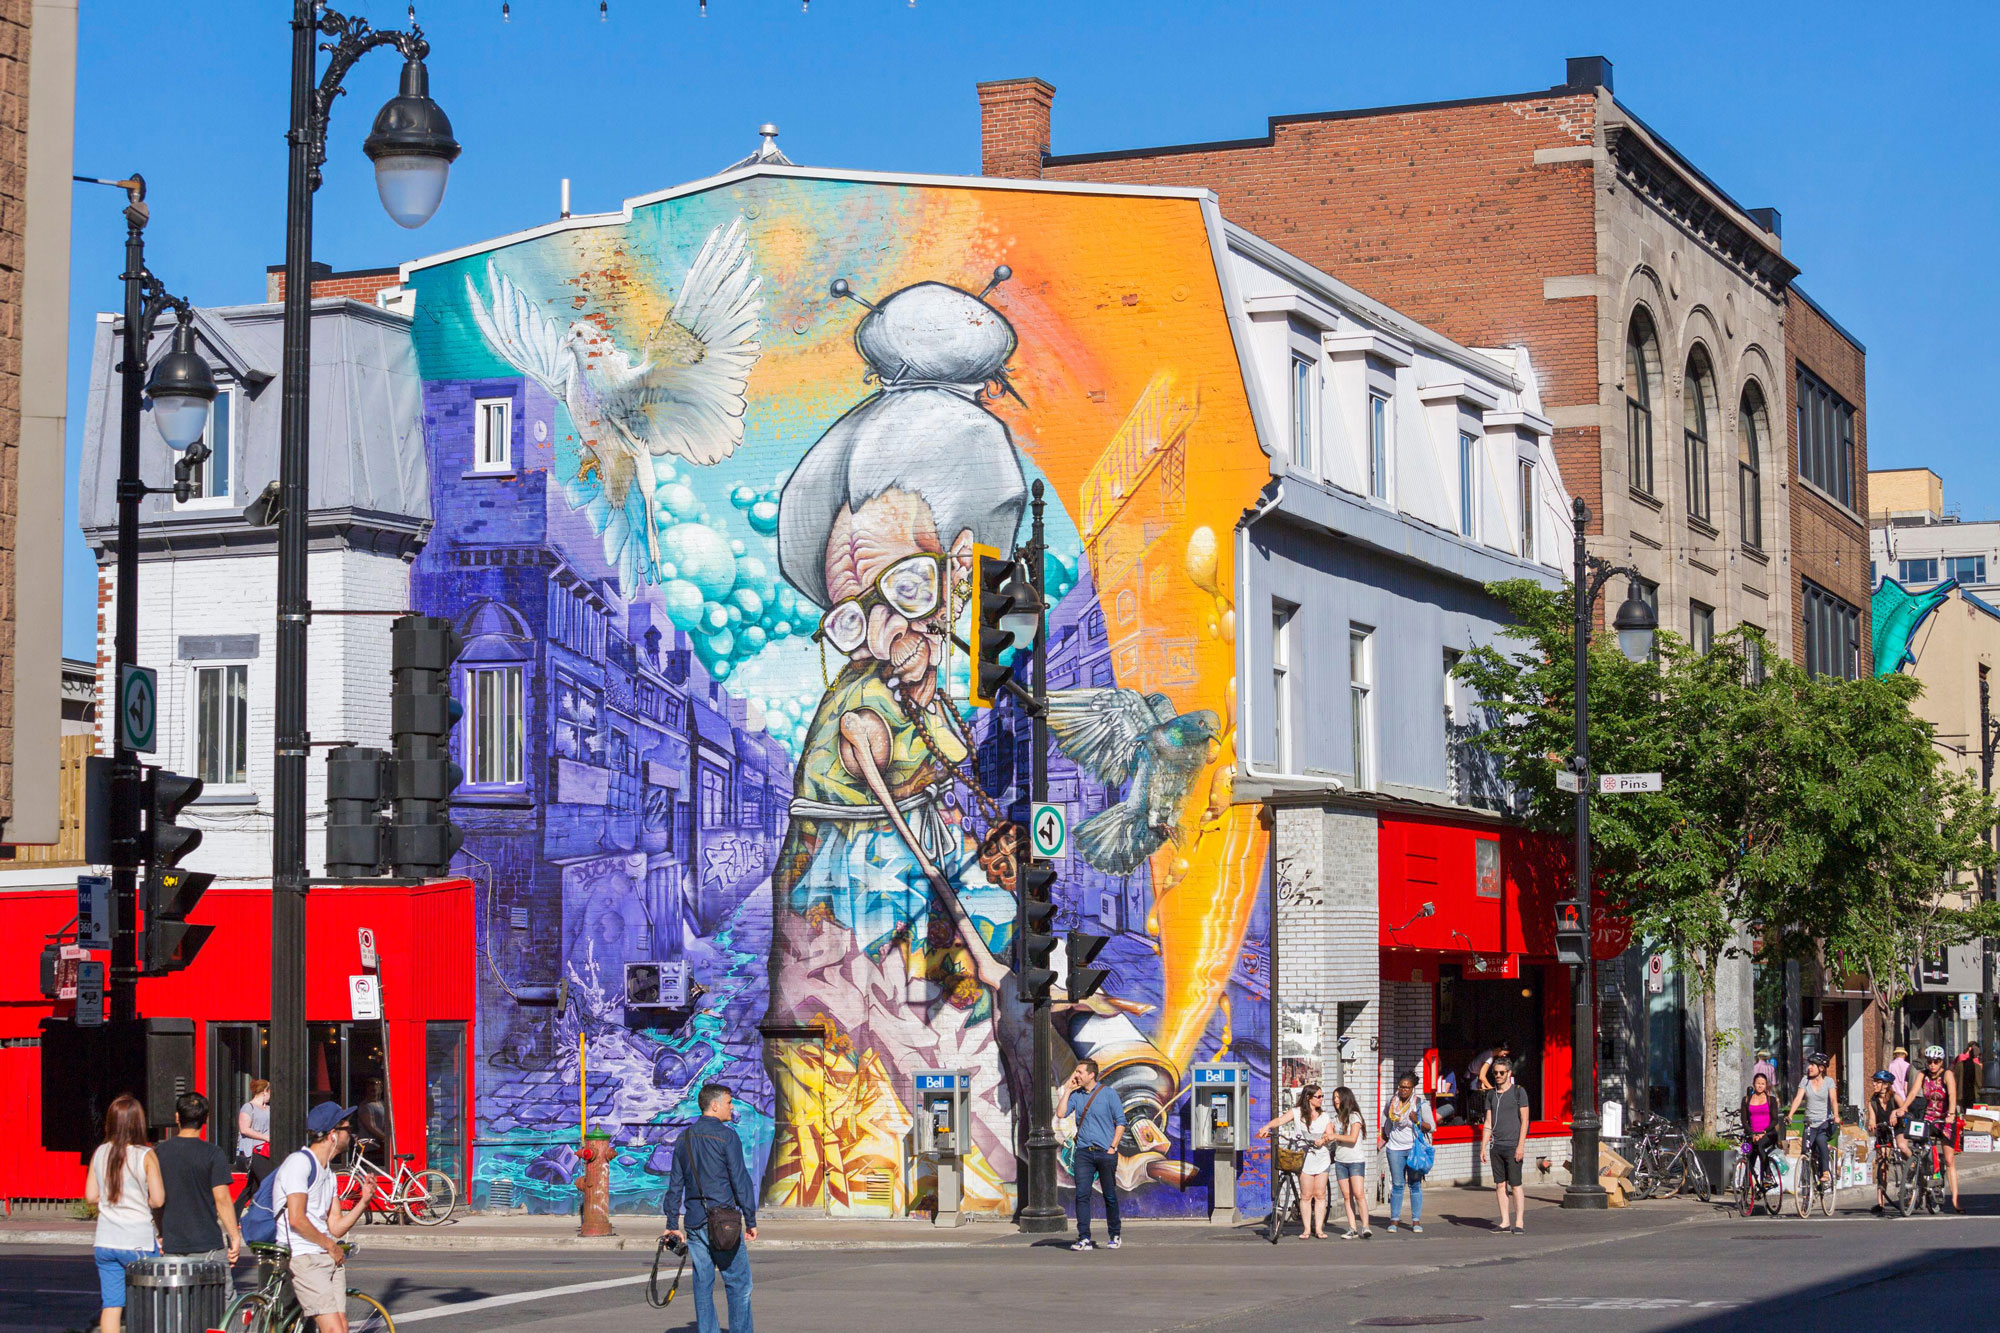 'Granny' by A'Shop from Montreal's Mural Festival 2013. Photo: Renault Philippe/Alam